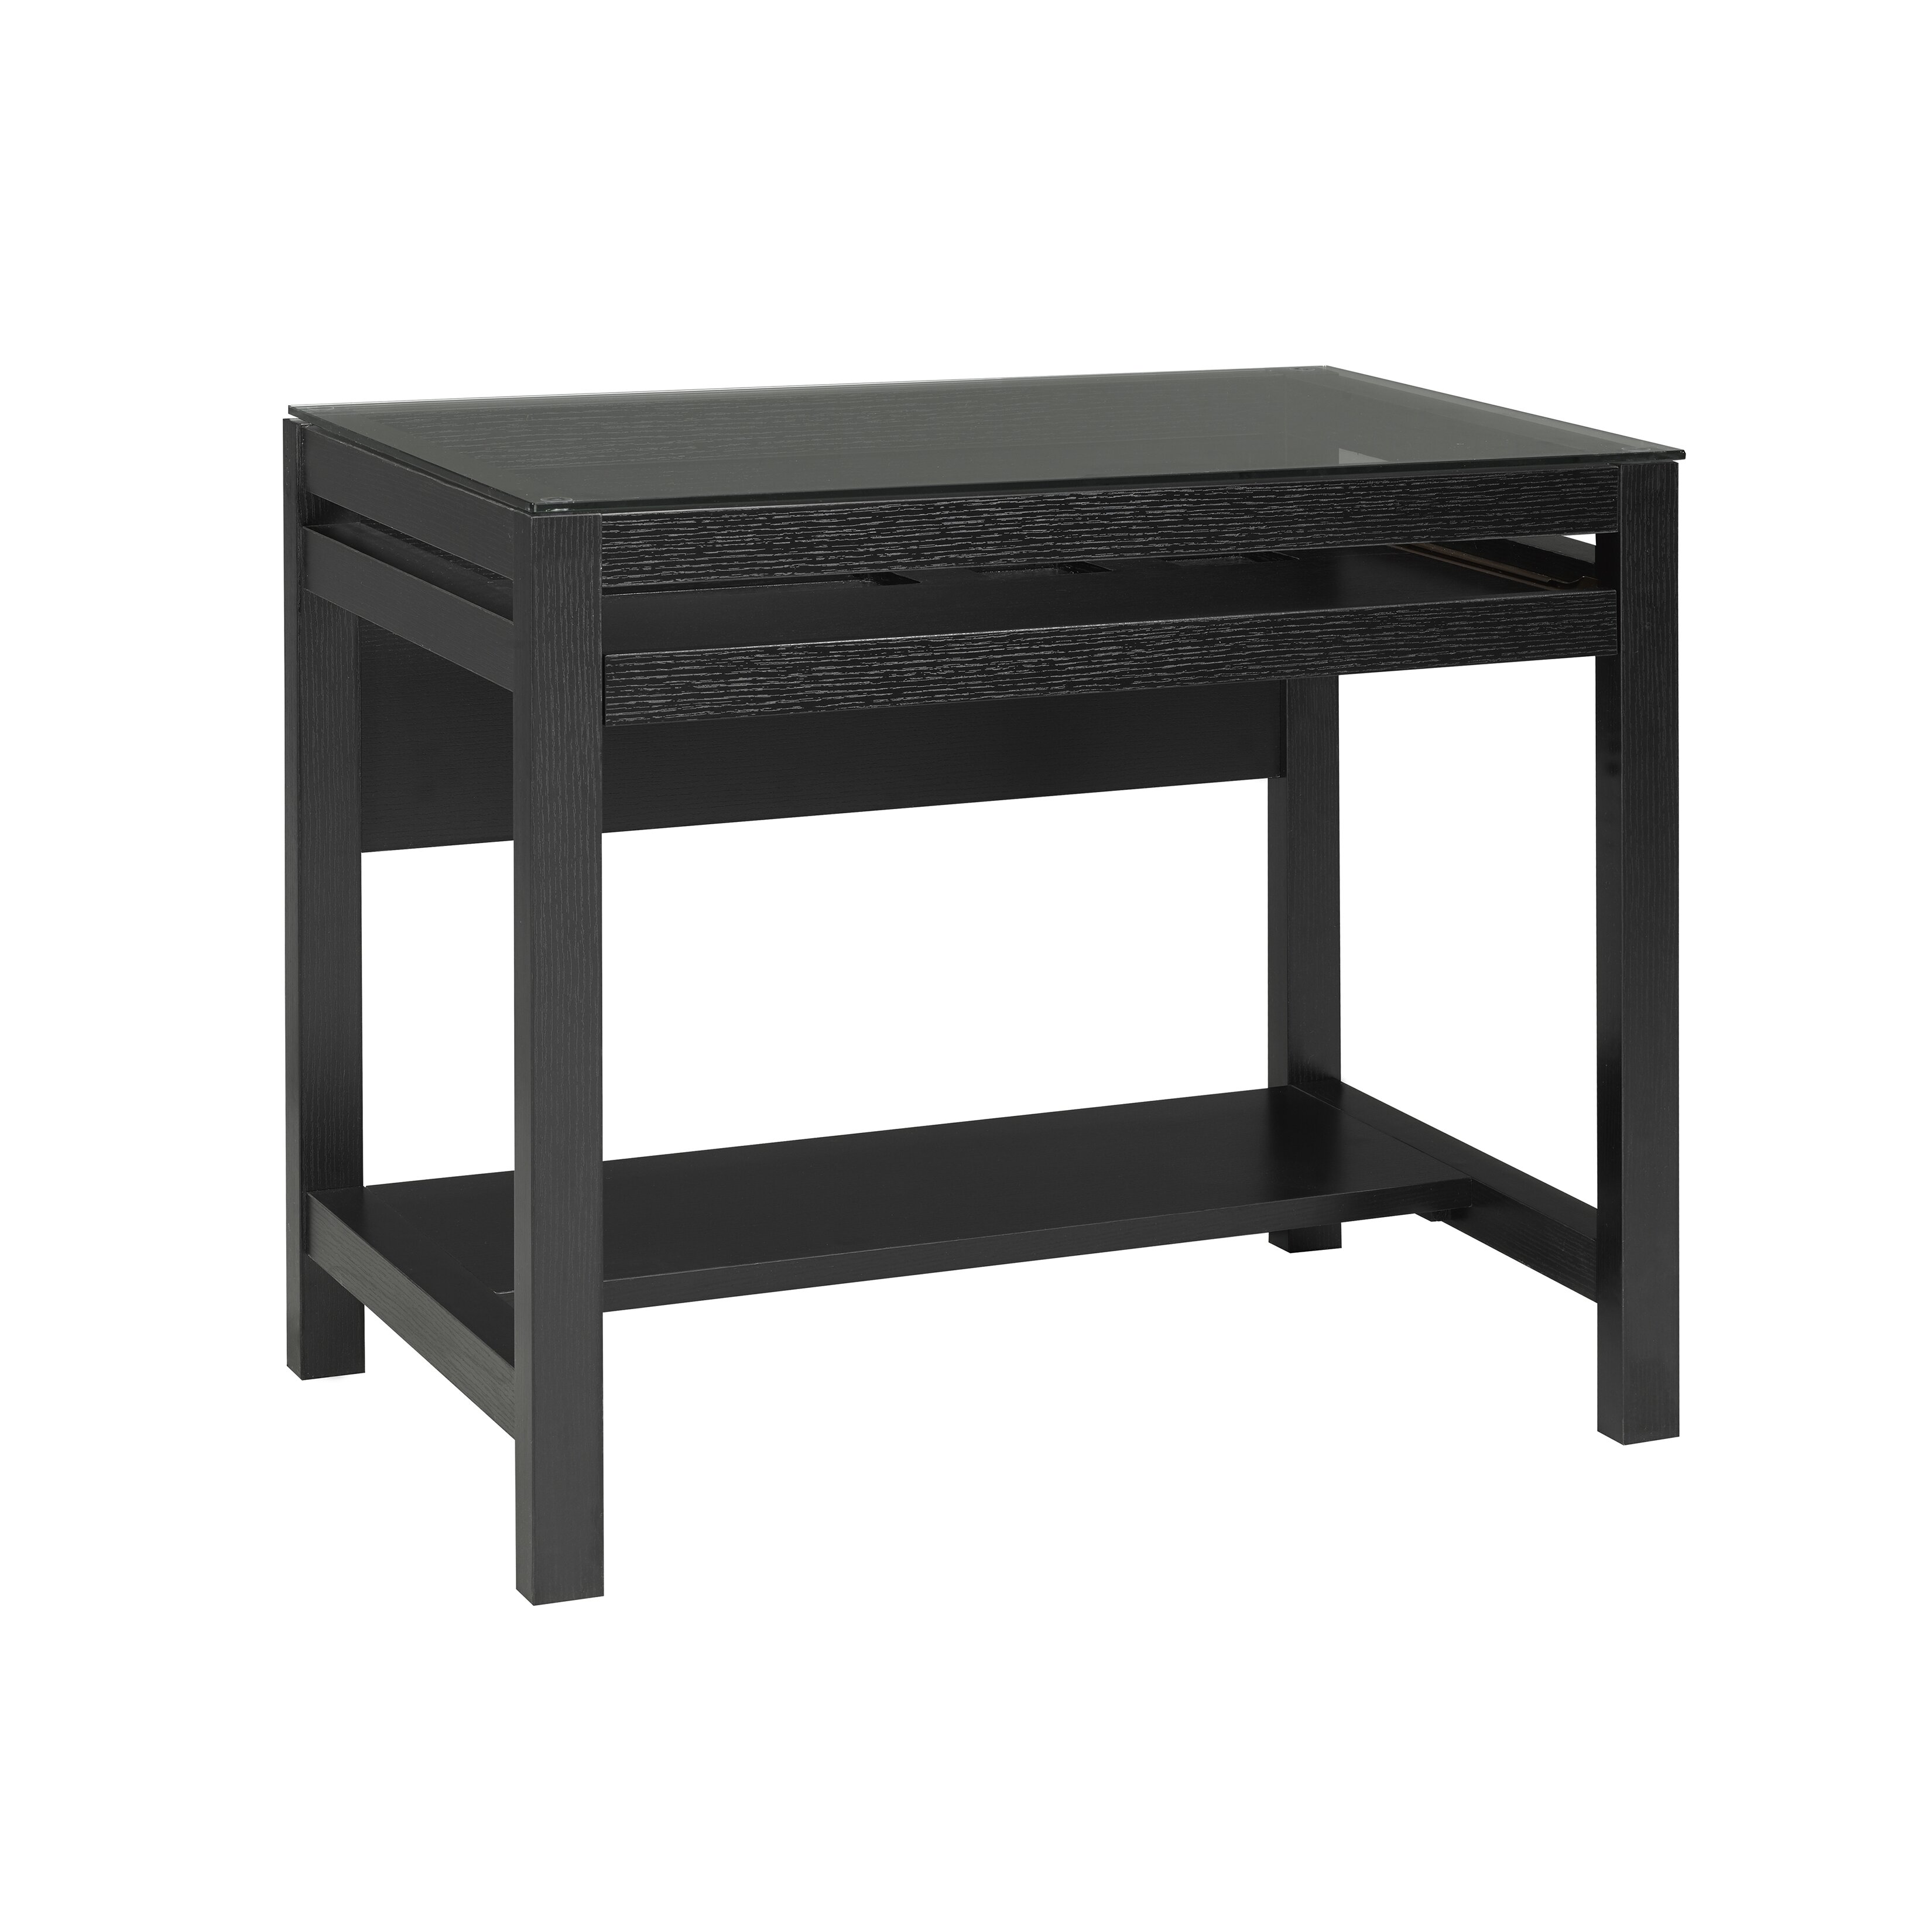 Brassex Computer Desk with Pull Out Keyboard Tray & Reviews | Wayfair.ca